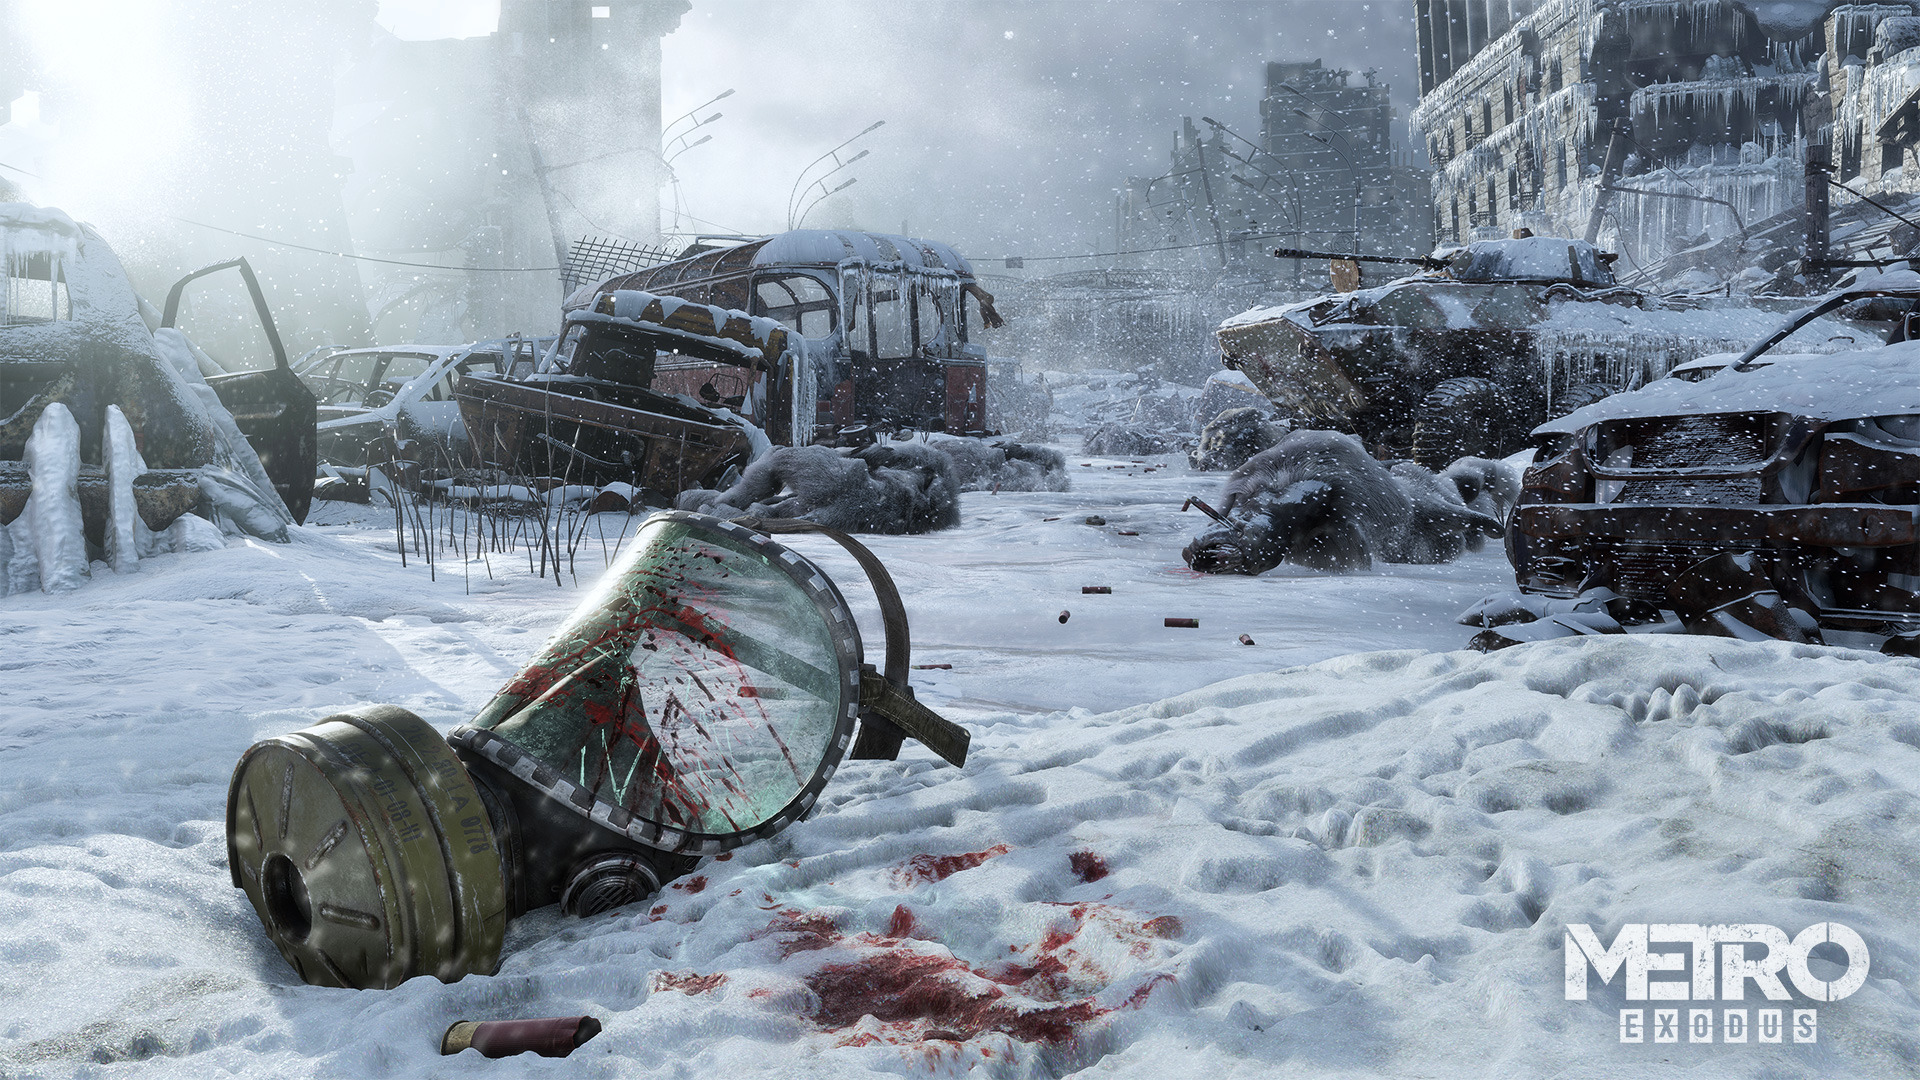 Metro Exodus delayed, won't see light of day until Q1 2019